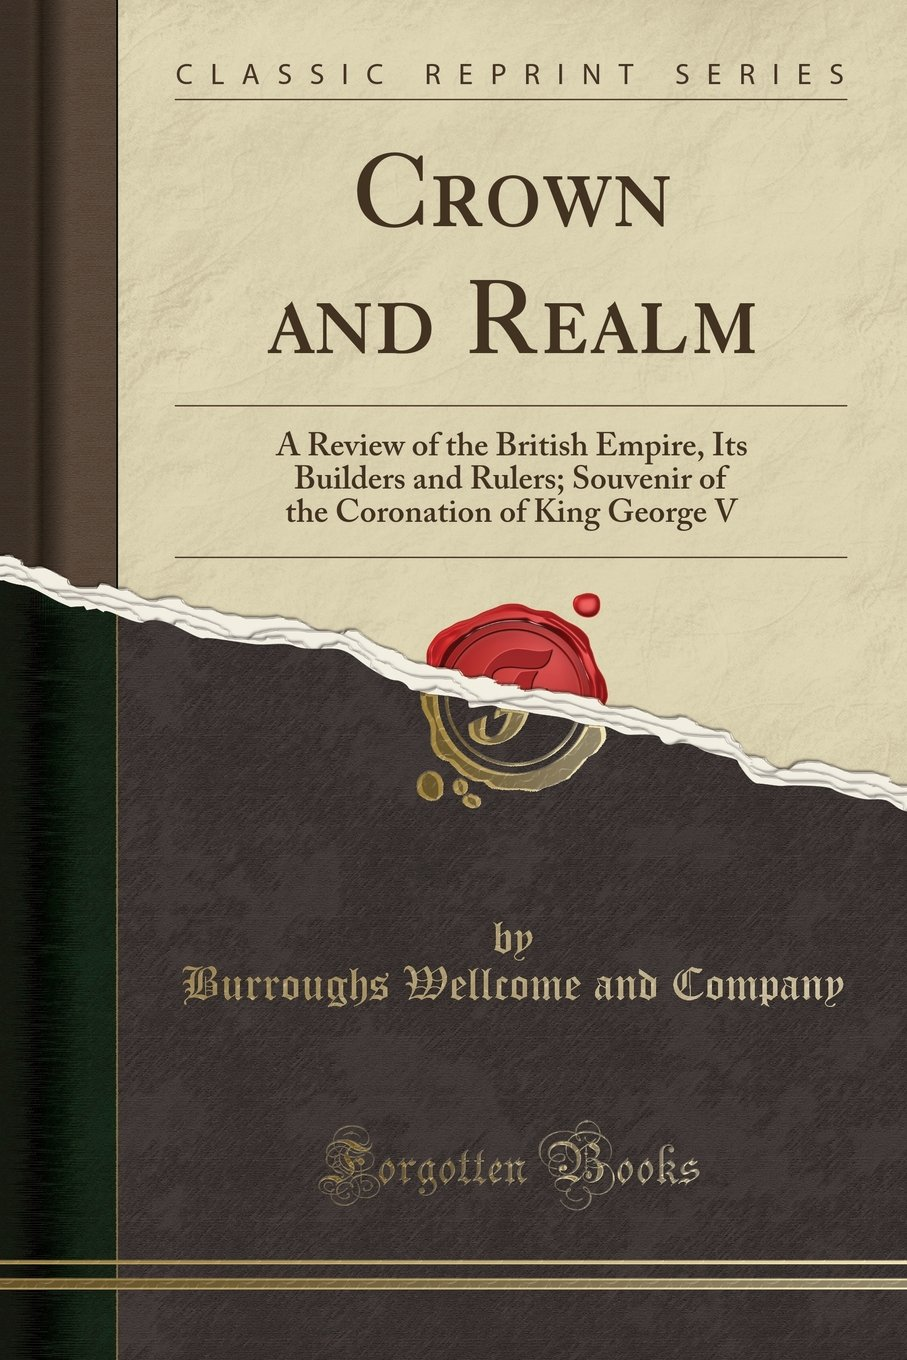 Crown and Realm: A Review of the British Empire, Its Builders and